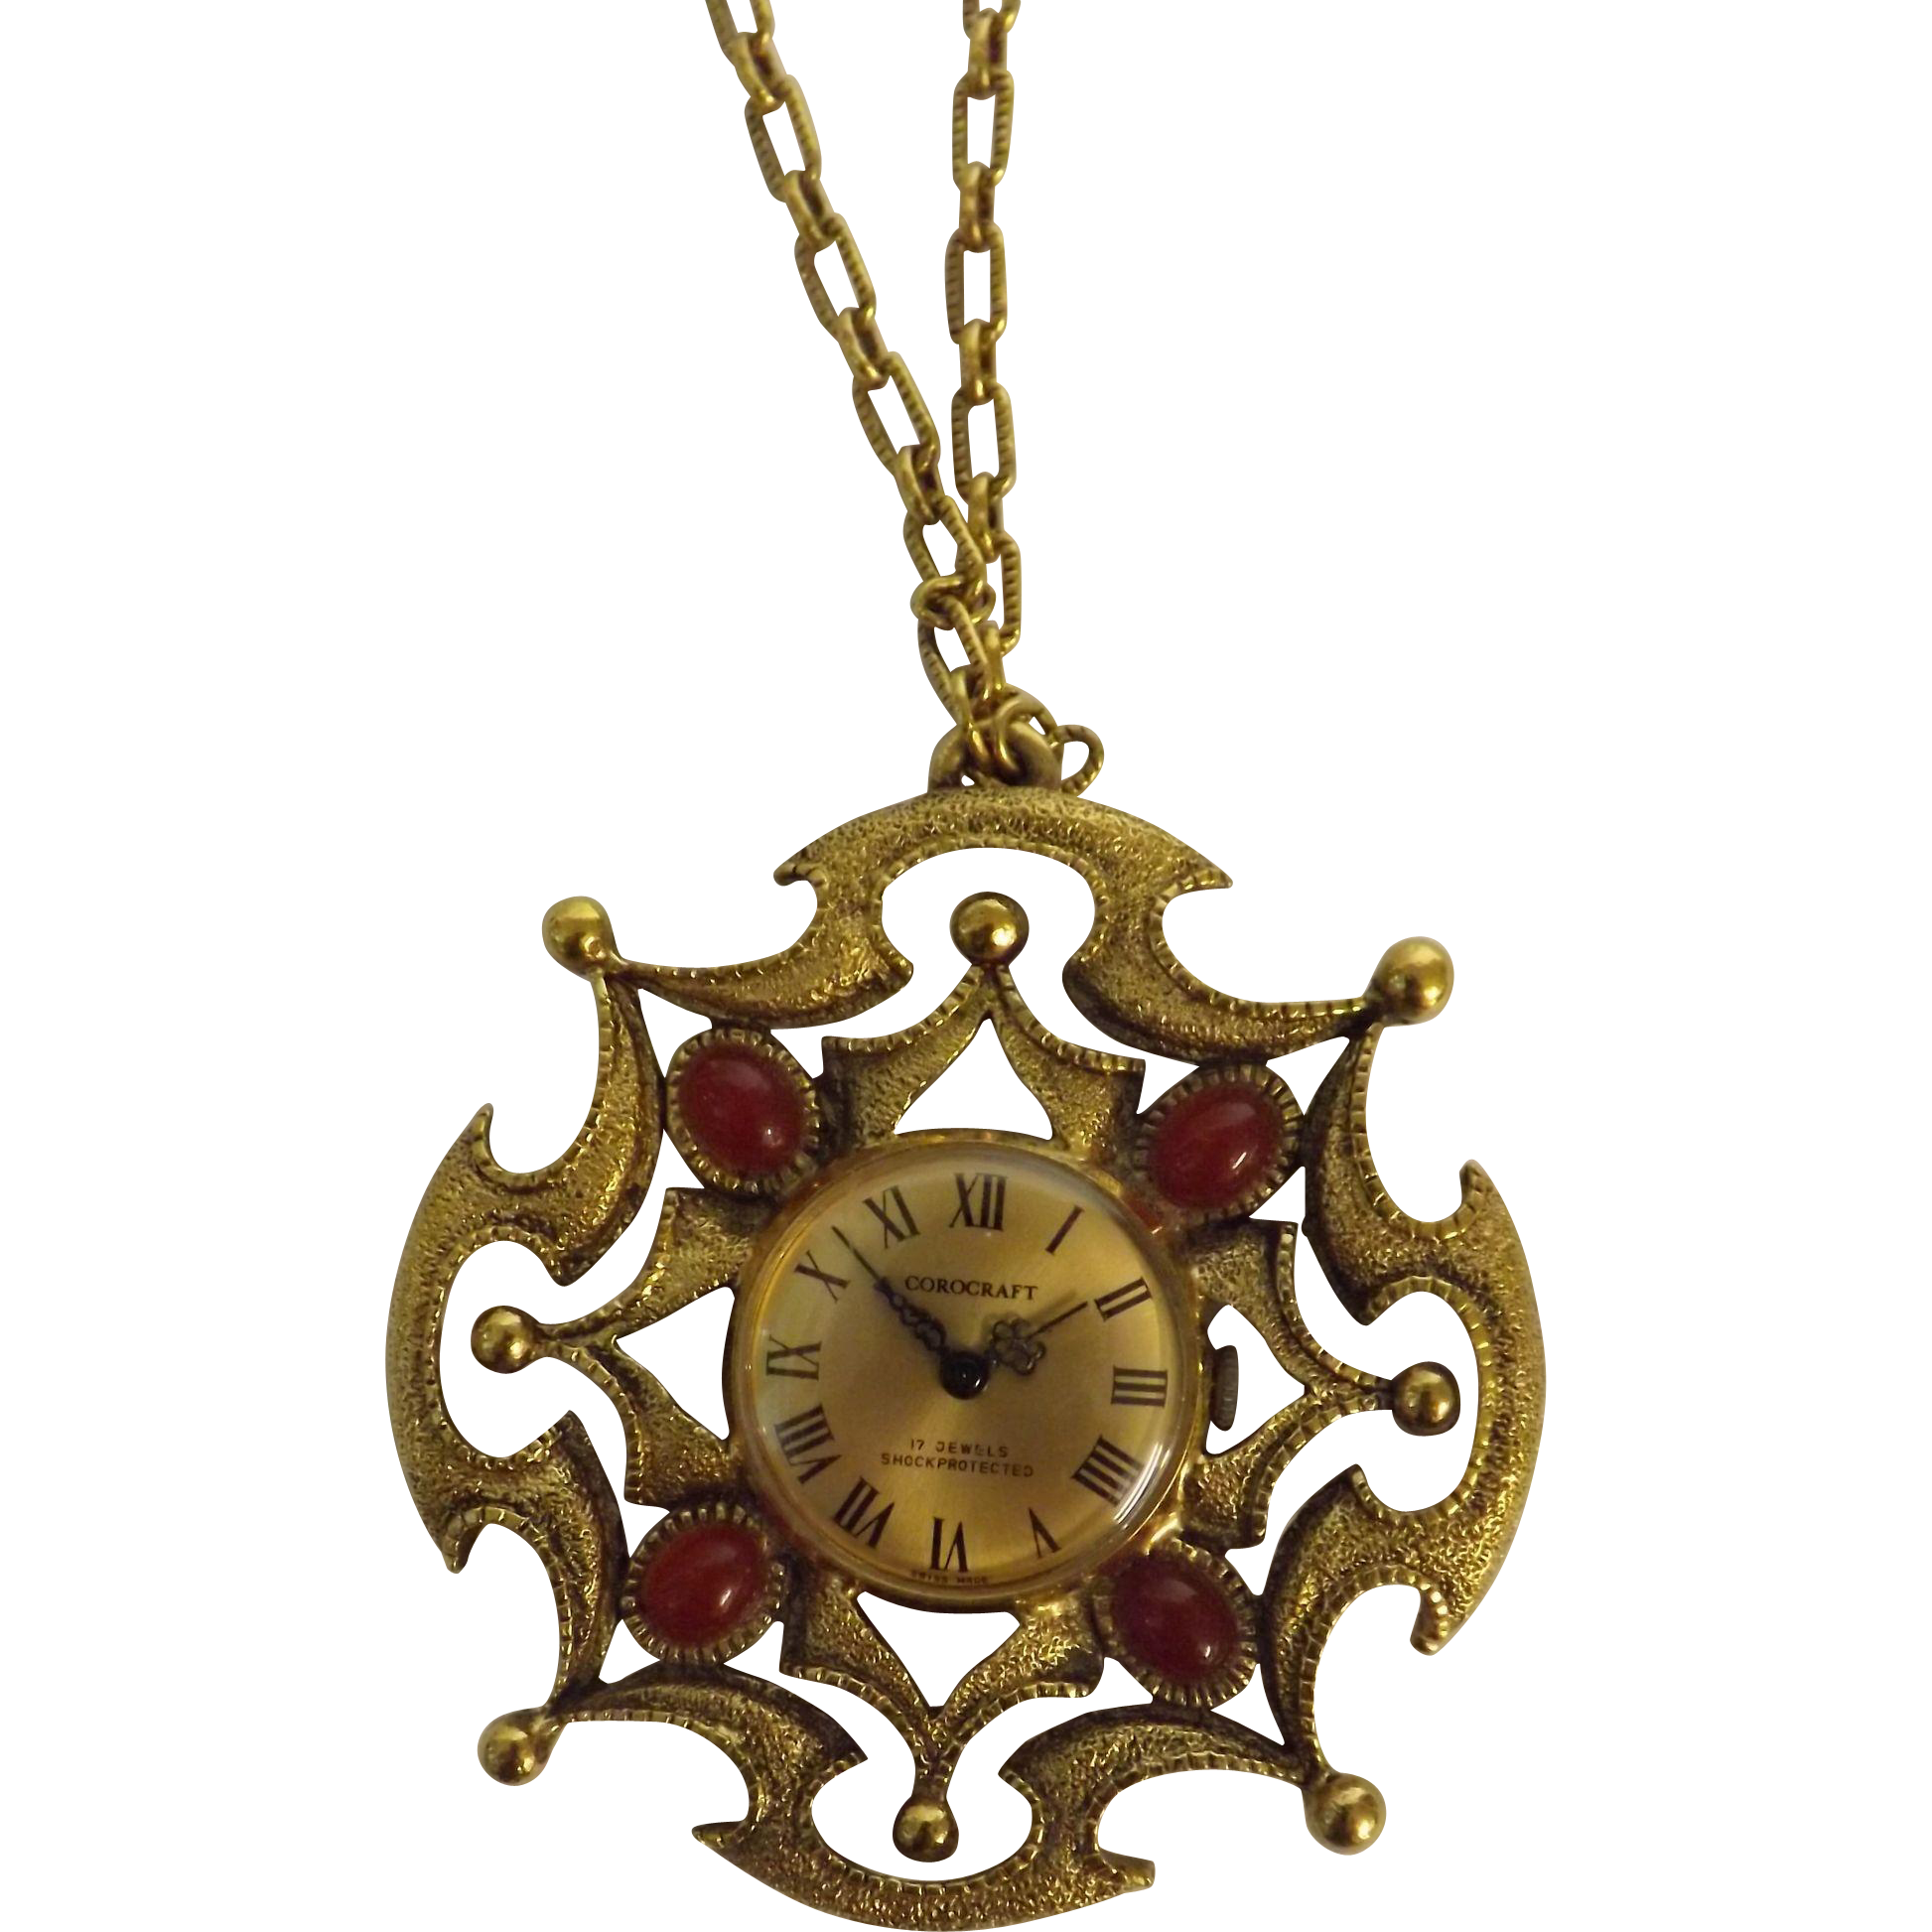 Corocraft 1970's Retro Pendant Watch